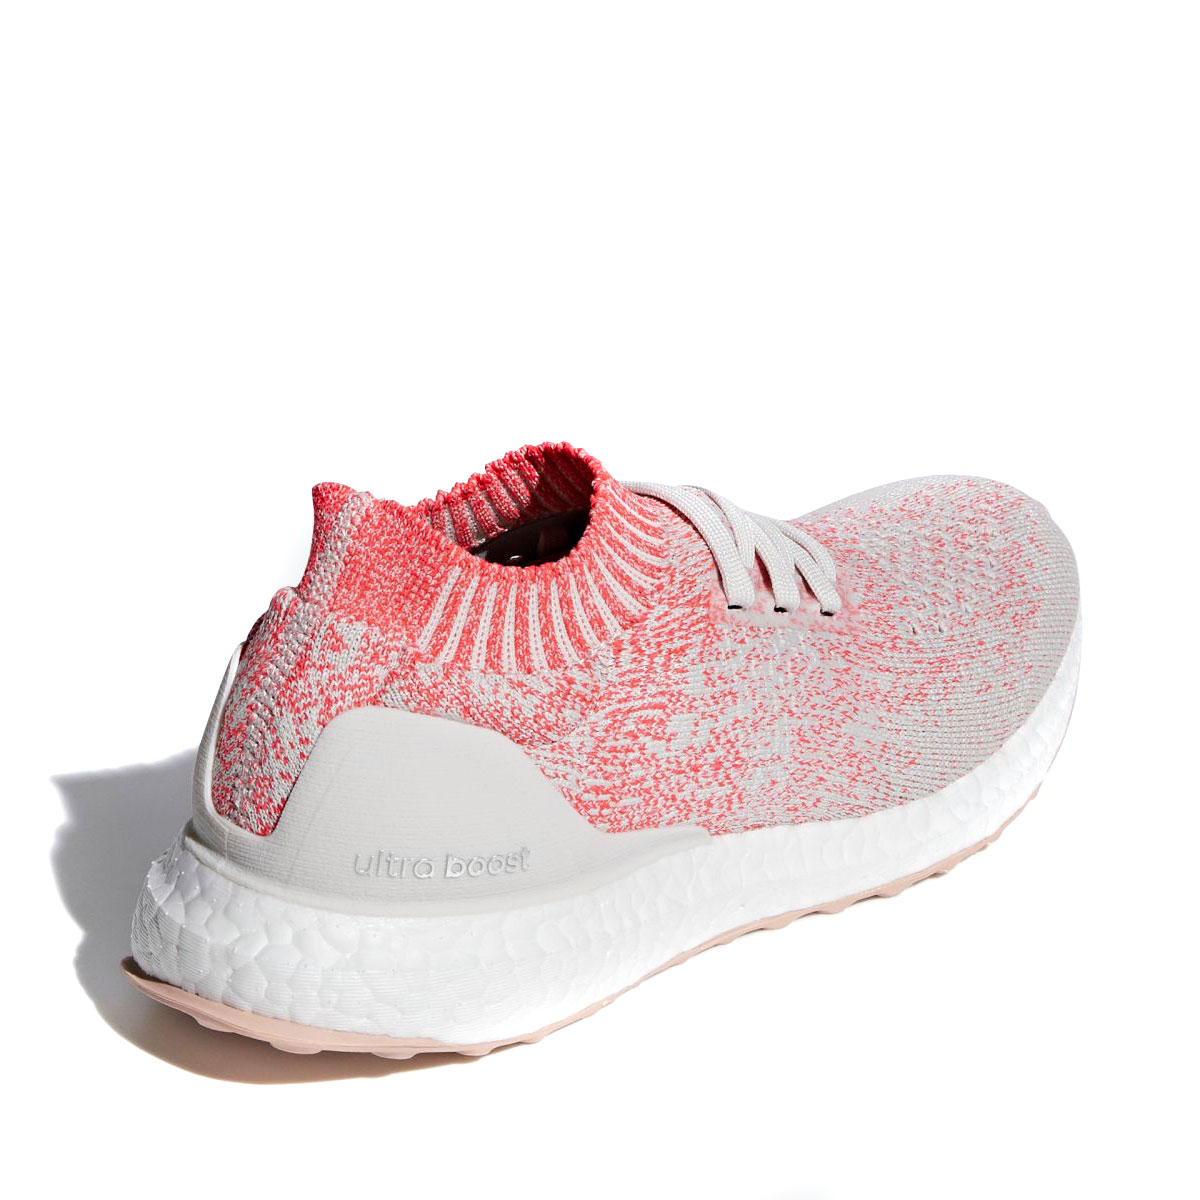 993200d919934 adidas UltraBOOST Uncaged W (RAW WHITE RAW WHITE SHOCK RED) (Adidas ultra  boost Ann caged W)